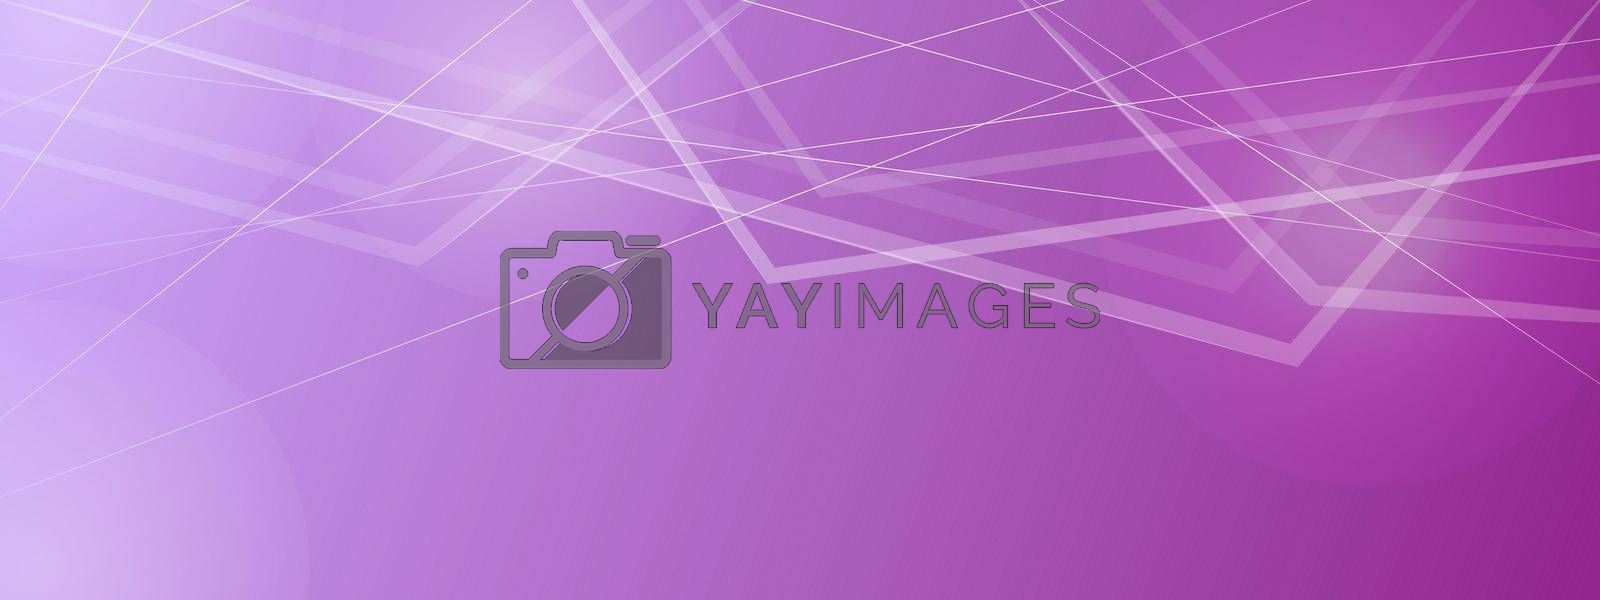 Abstract purple background with overlapping arbitrary shapes. Gradient purple background template for banners, cards, posters. Creative design.